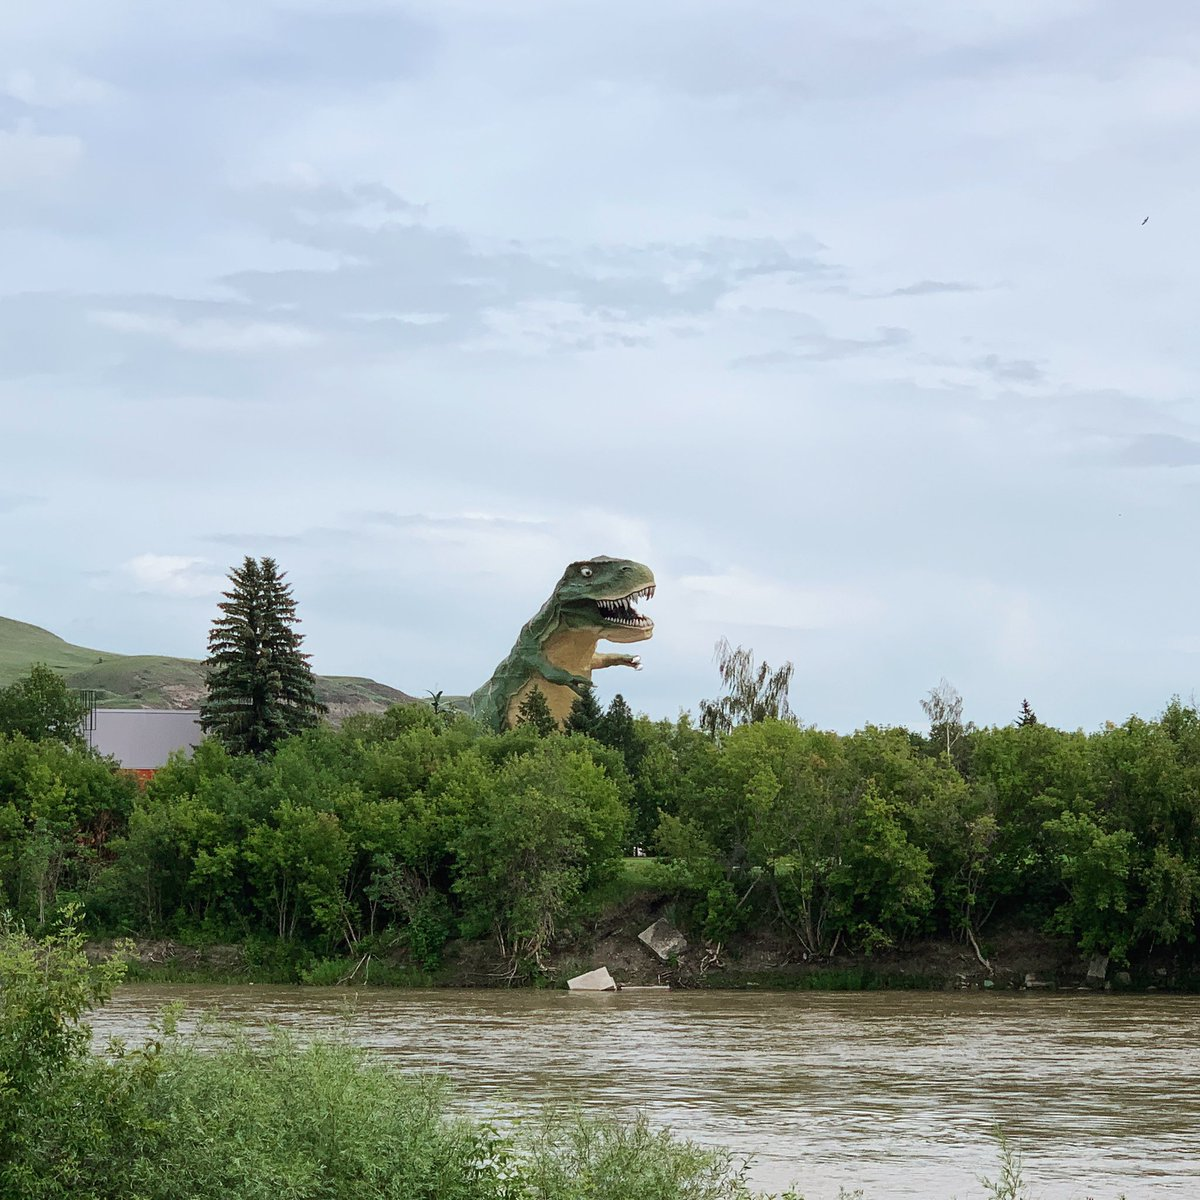 #SignsThatYouLiveInThePast - when you randomly see this on #SummerVacation. Who doesn't love #Dinosaurs?  #WorldsLargestDinosaur  Happy #Thursday! #Dinosaur #Triassic #Jurassic #Cretaceous #Predator<br>http://pic.twitter.com/oygsxm2pGi